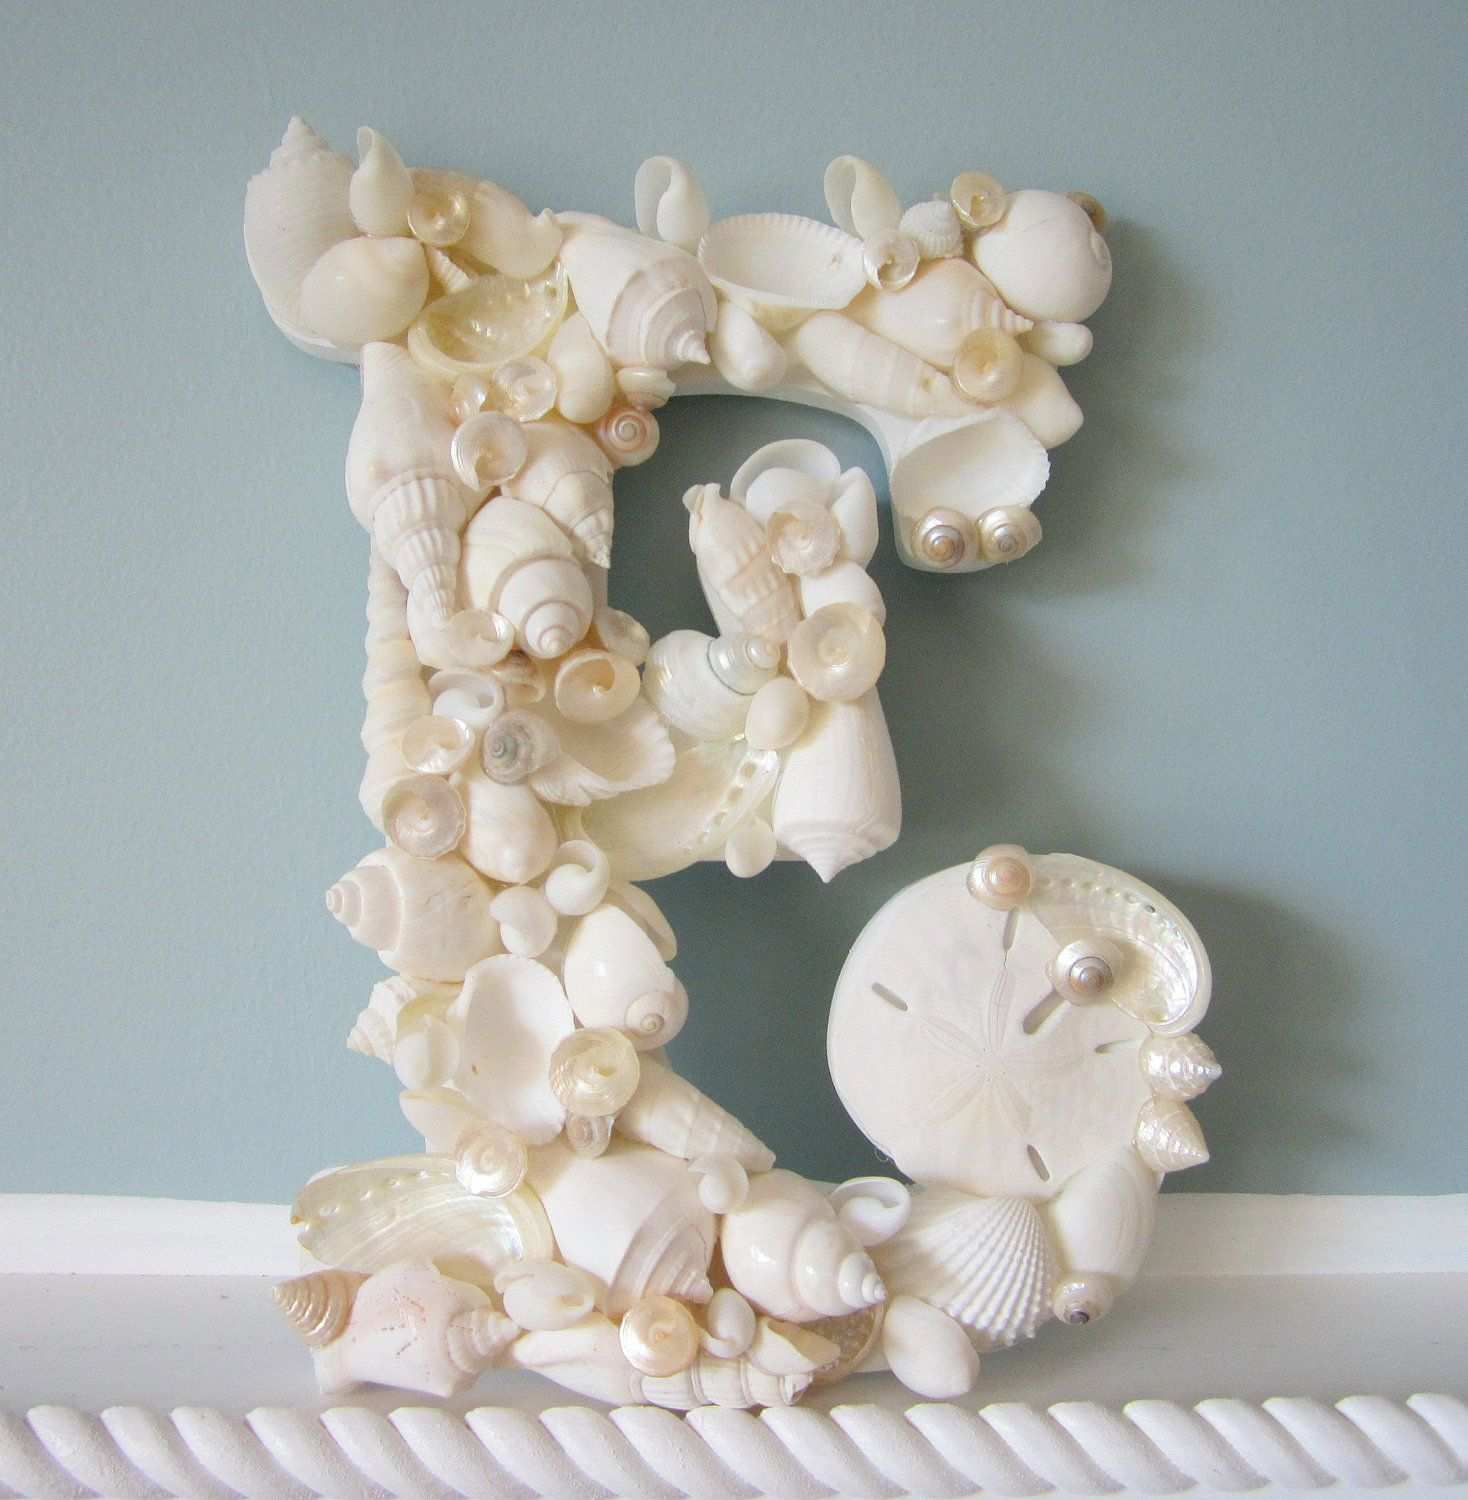 Bettwäsche Meerjungfrau Shell Letter For Beach Decor Nautical Decor Seashell